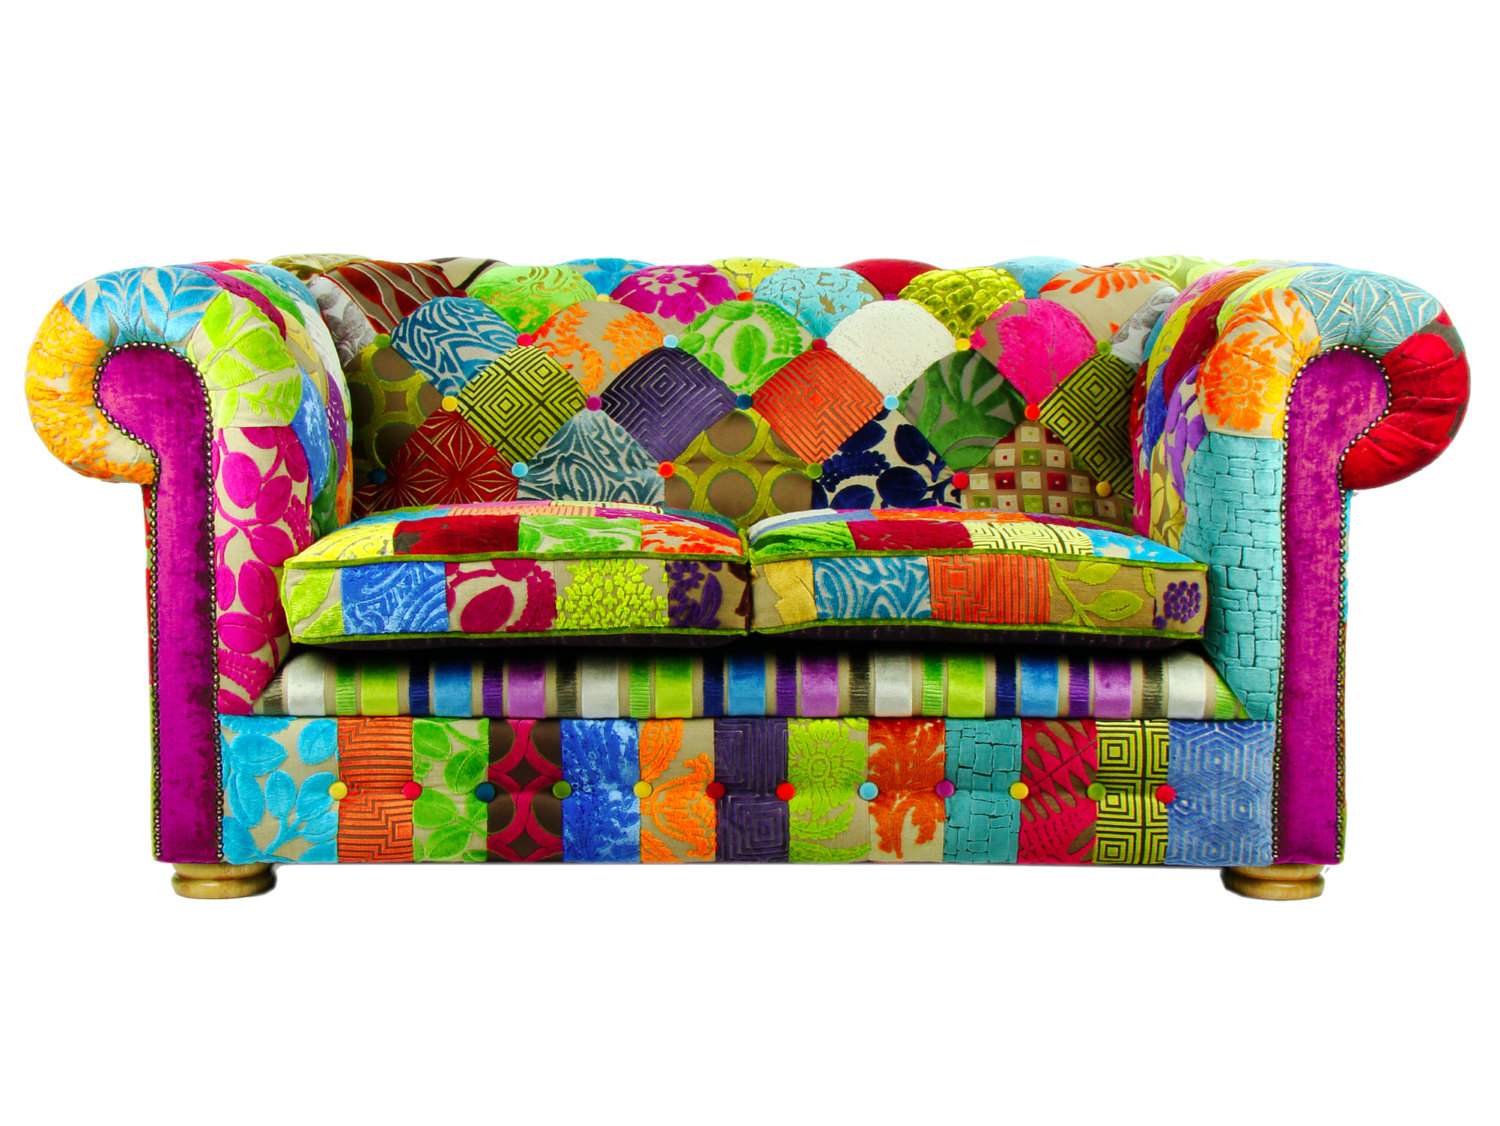 Divano Chesterfield inglese Patchwork 2 COLLINS & COOPER